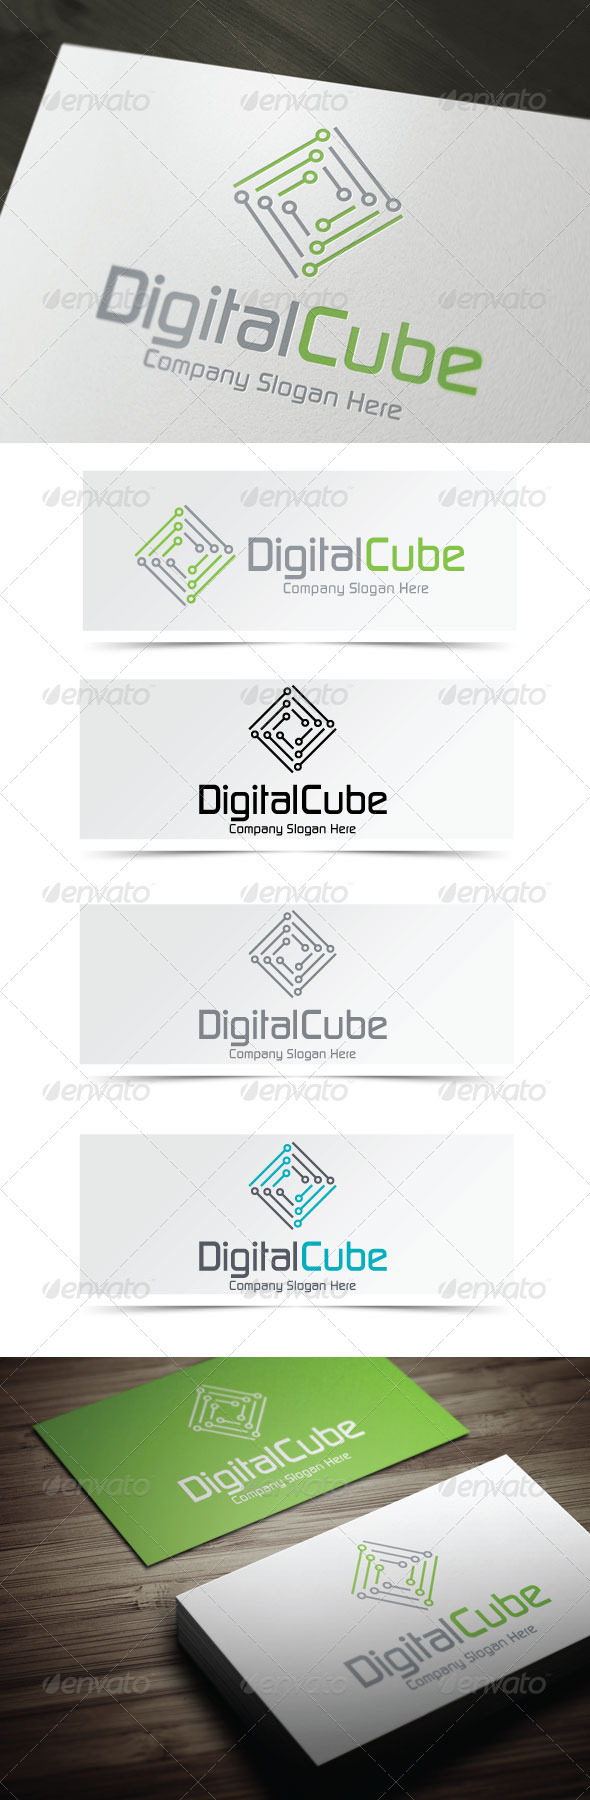 GraphicRiver Digital Cube 3946853